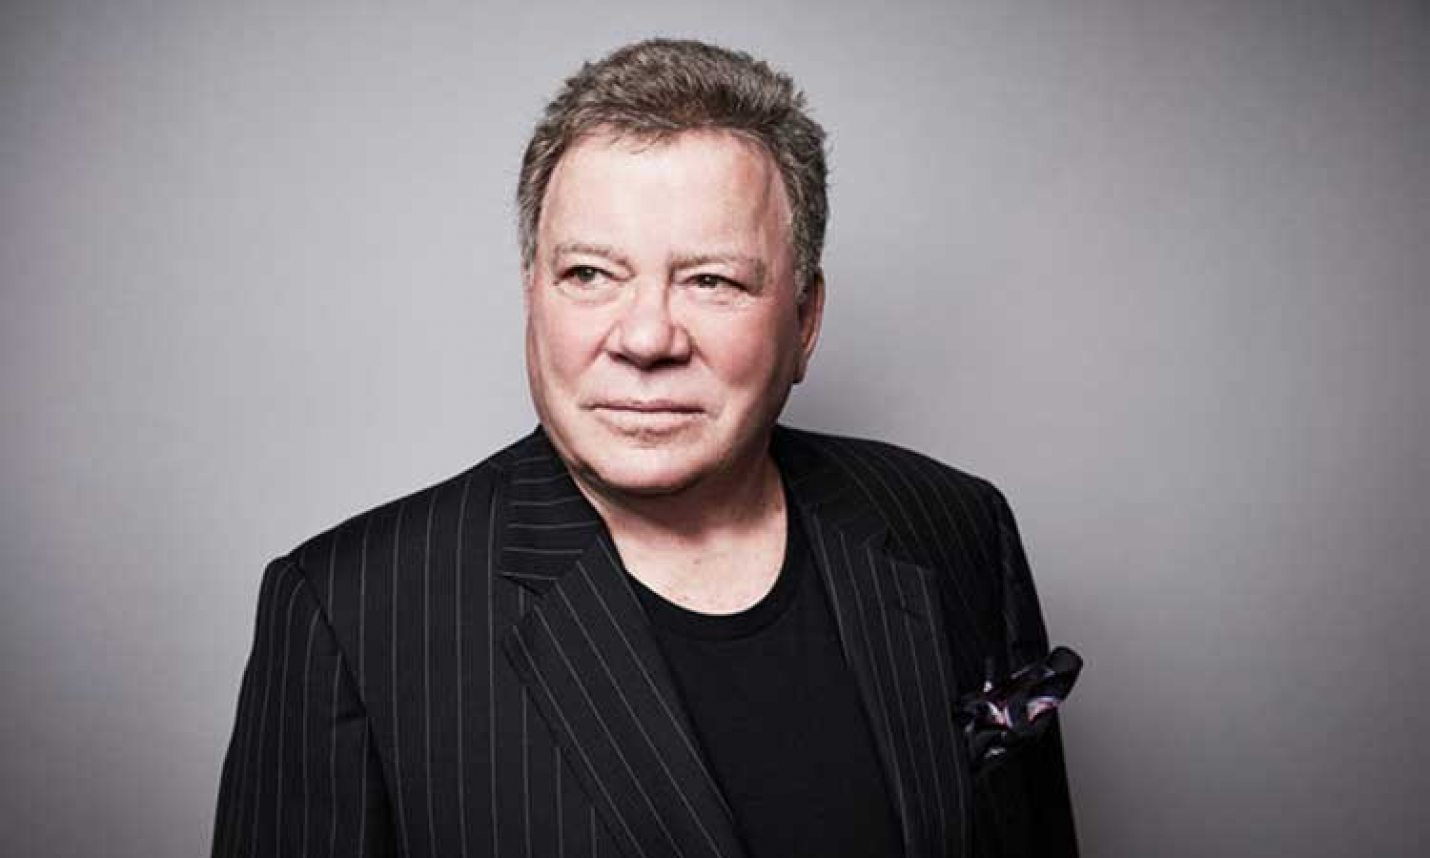 William Shatner - SCI-FI CULTURAL ICON TO APPEAR AT COMIC CON AFRICA